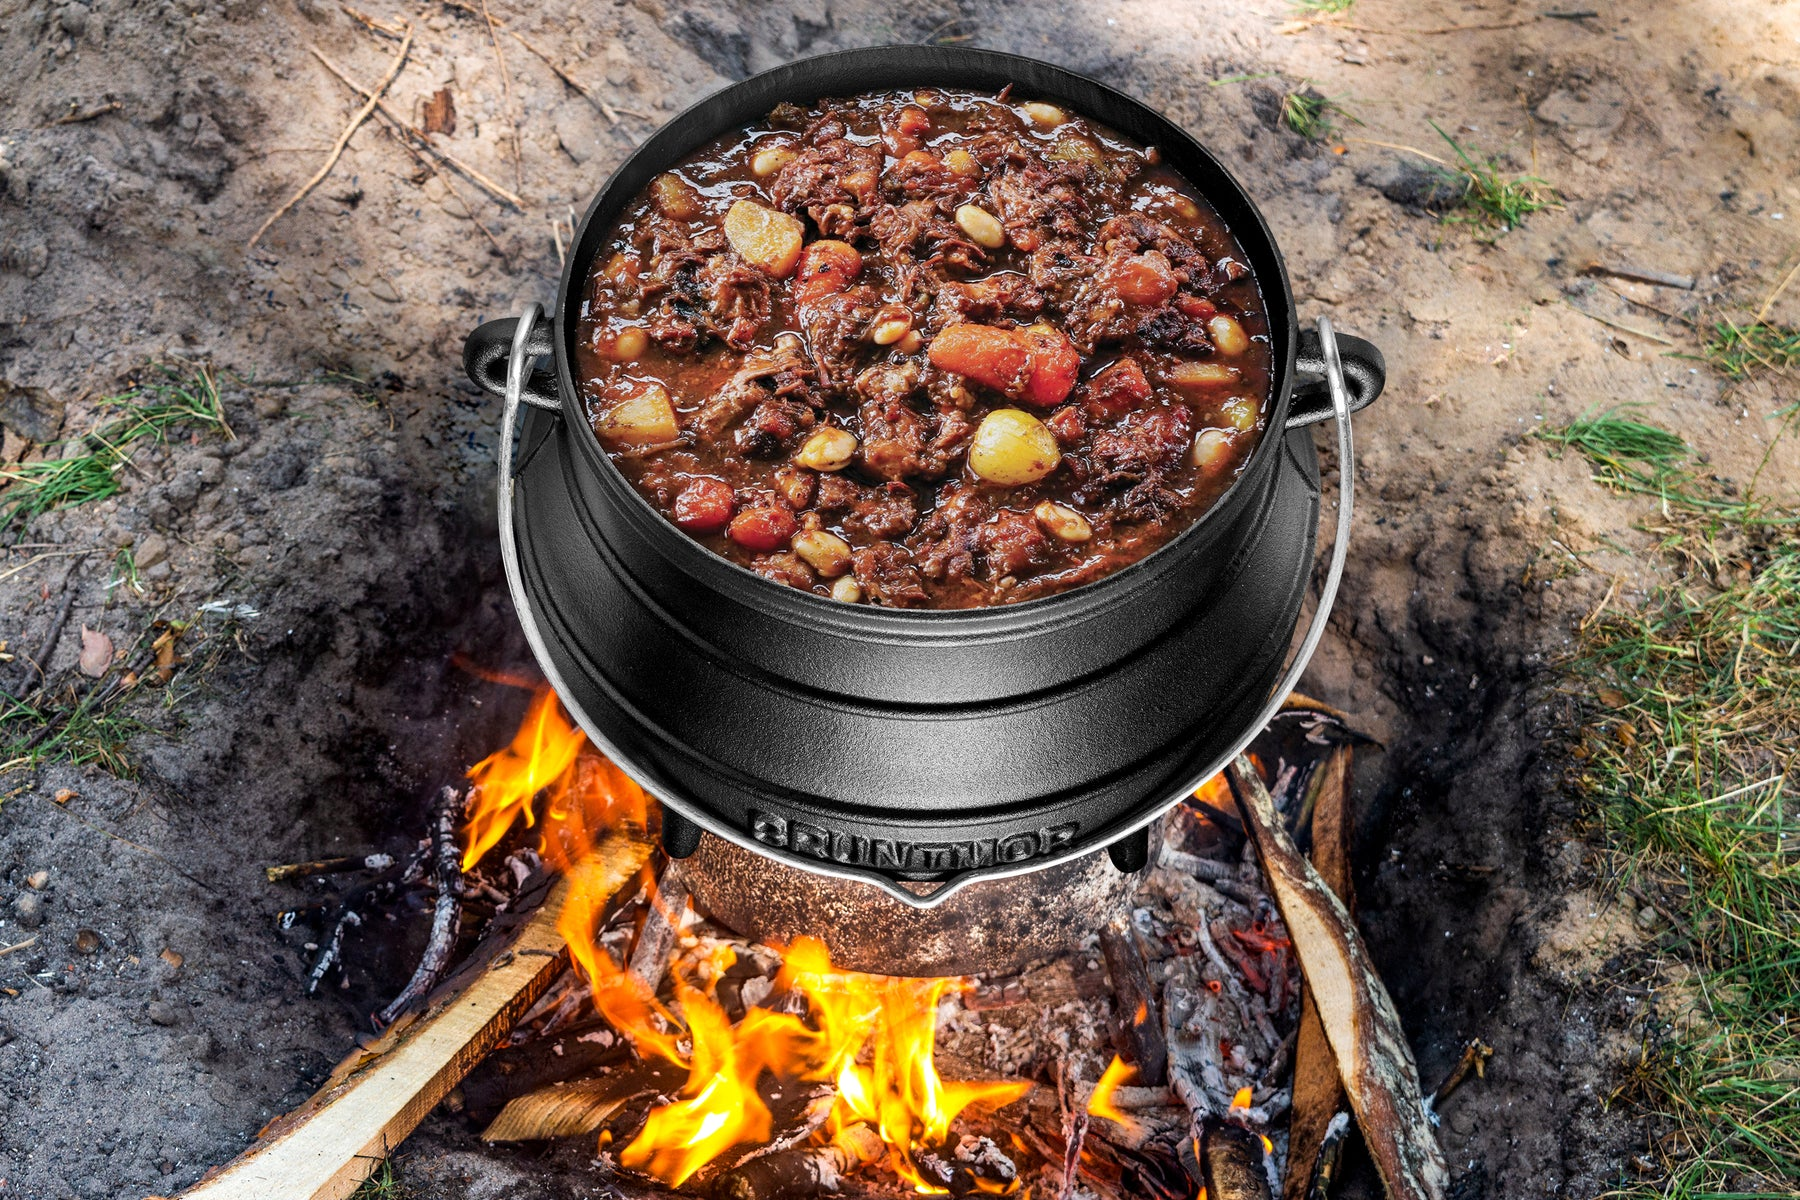 All About Our Cast Iron Pre-Seasoned Potjie African Pot